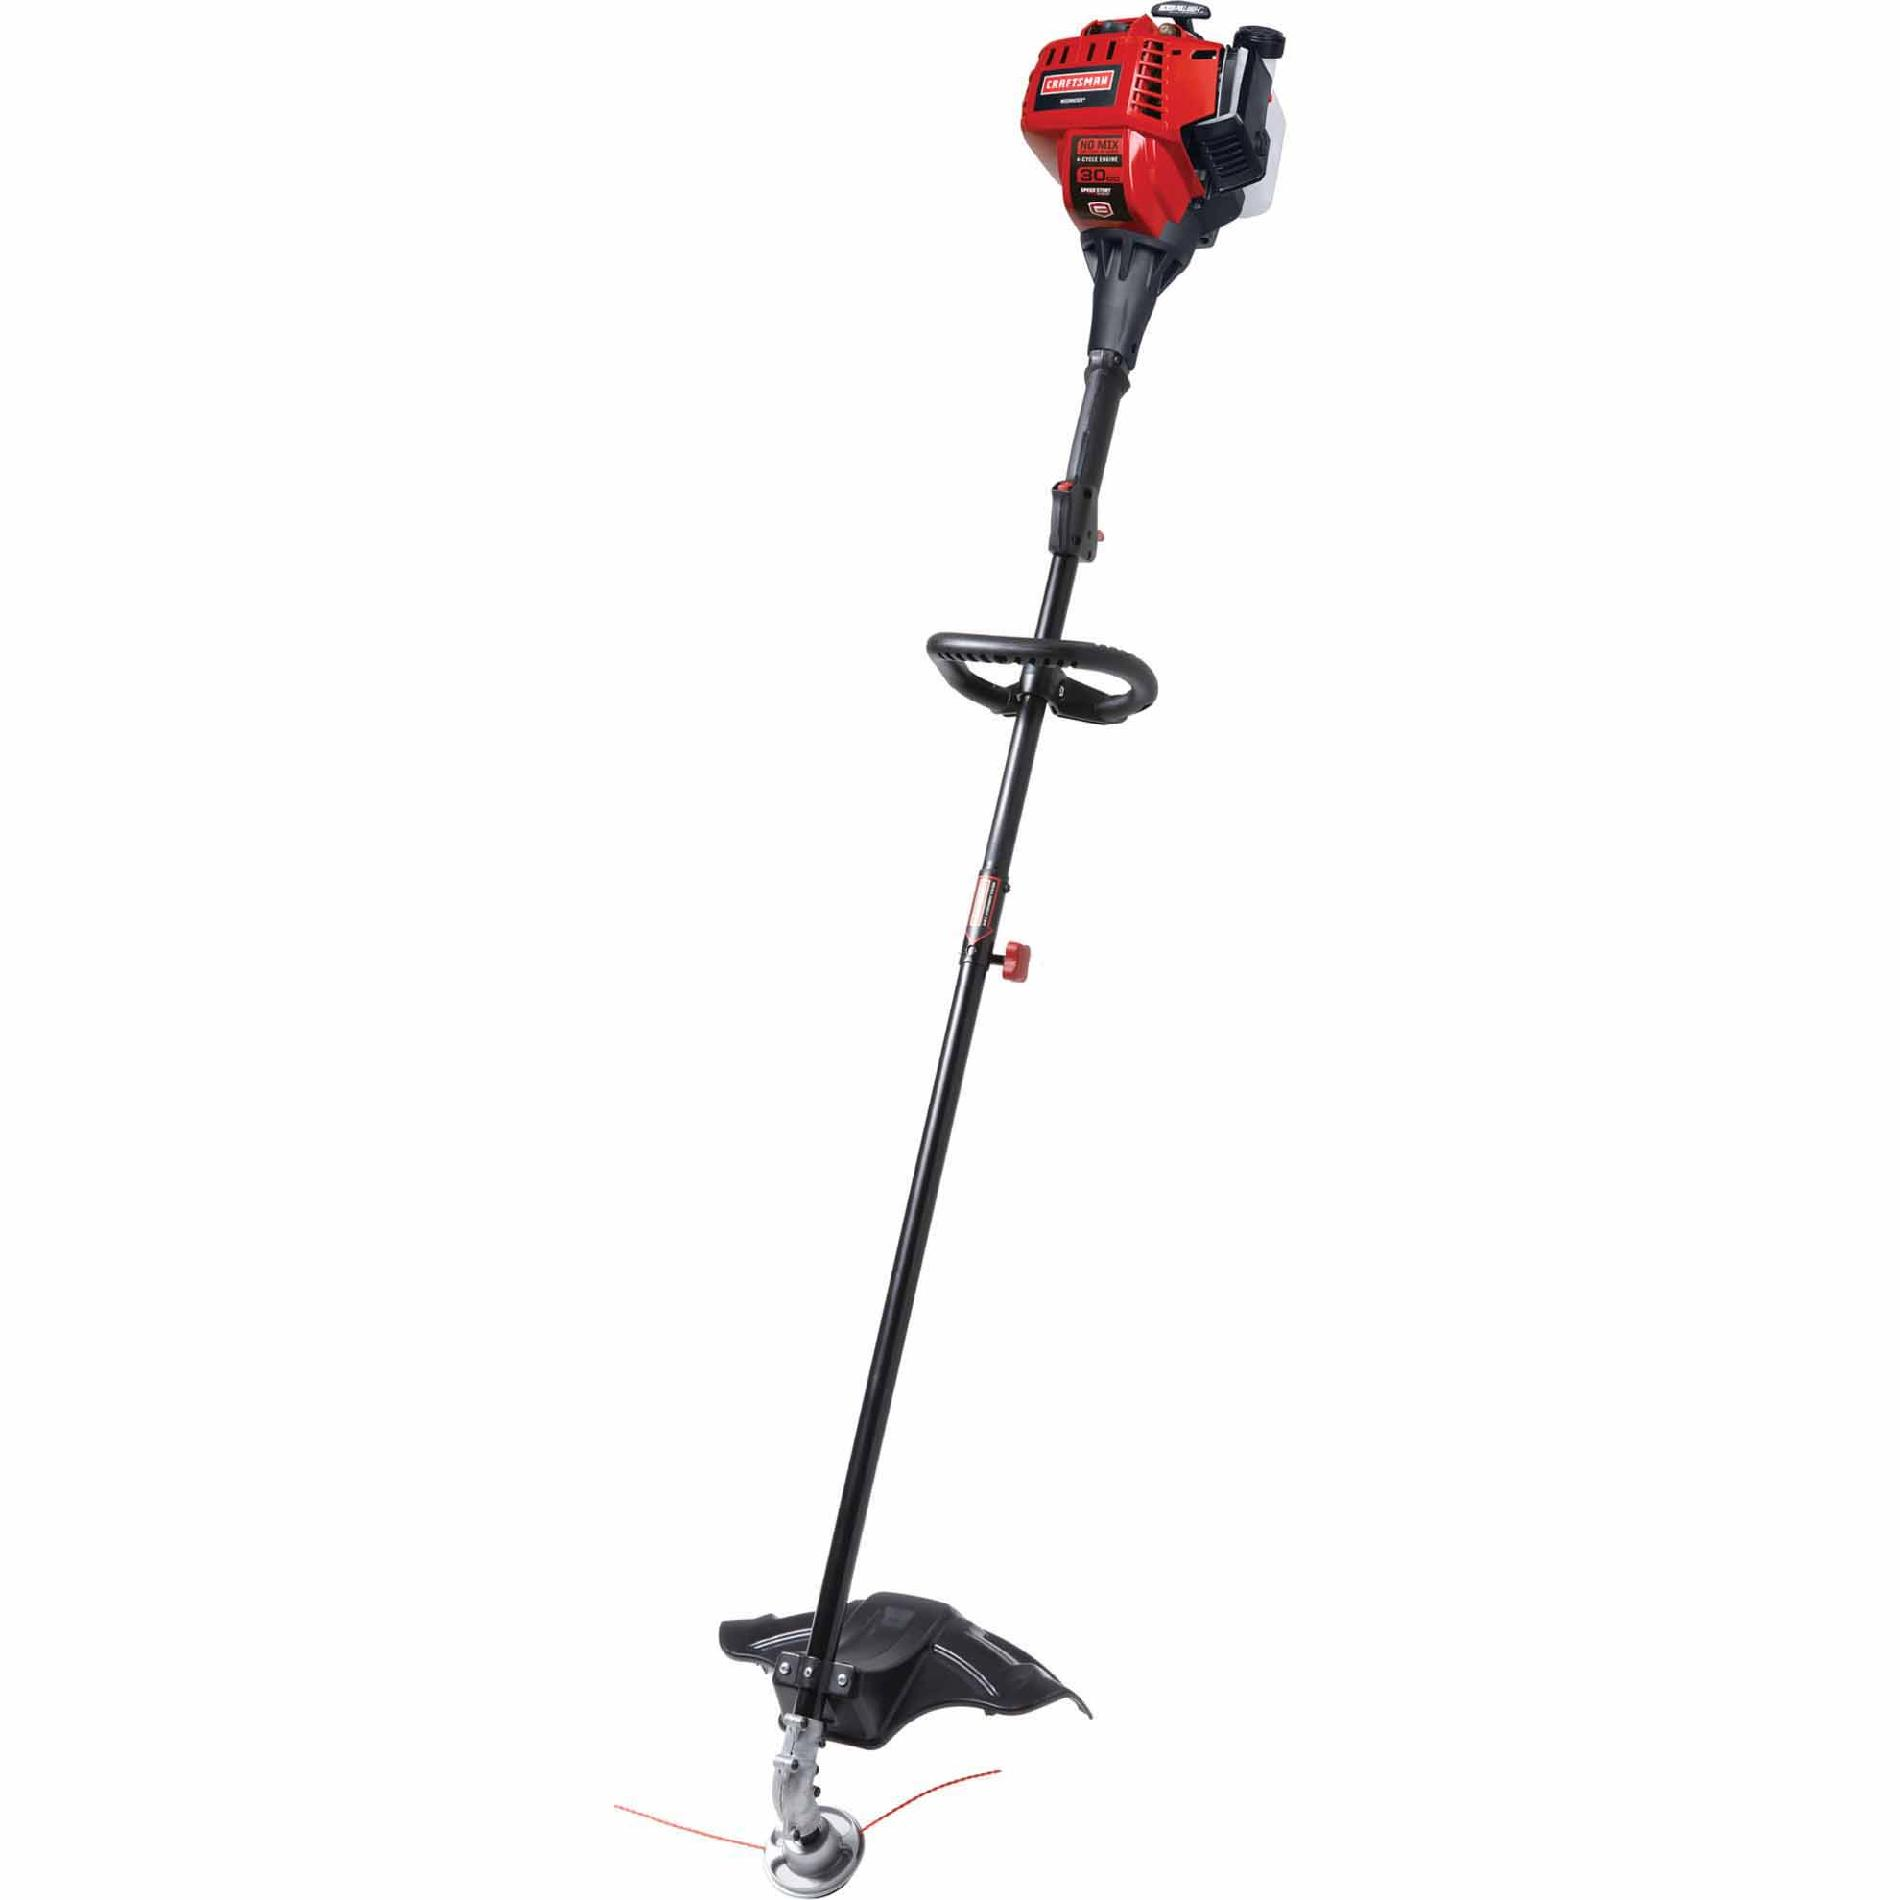 Craftsman 29c 4-Cycle Gas Lawn Grass Weed Trimmer 79196 (1